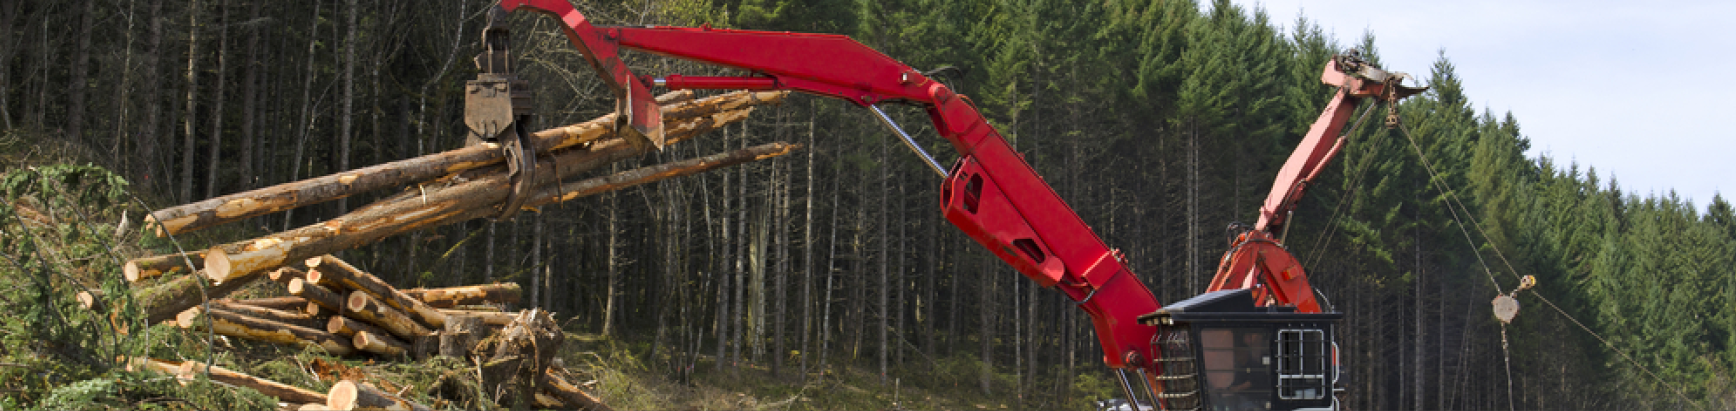 Agricultural-and-Forestry-Equipment-1302x308-3